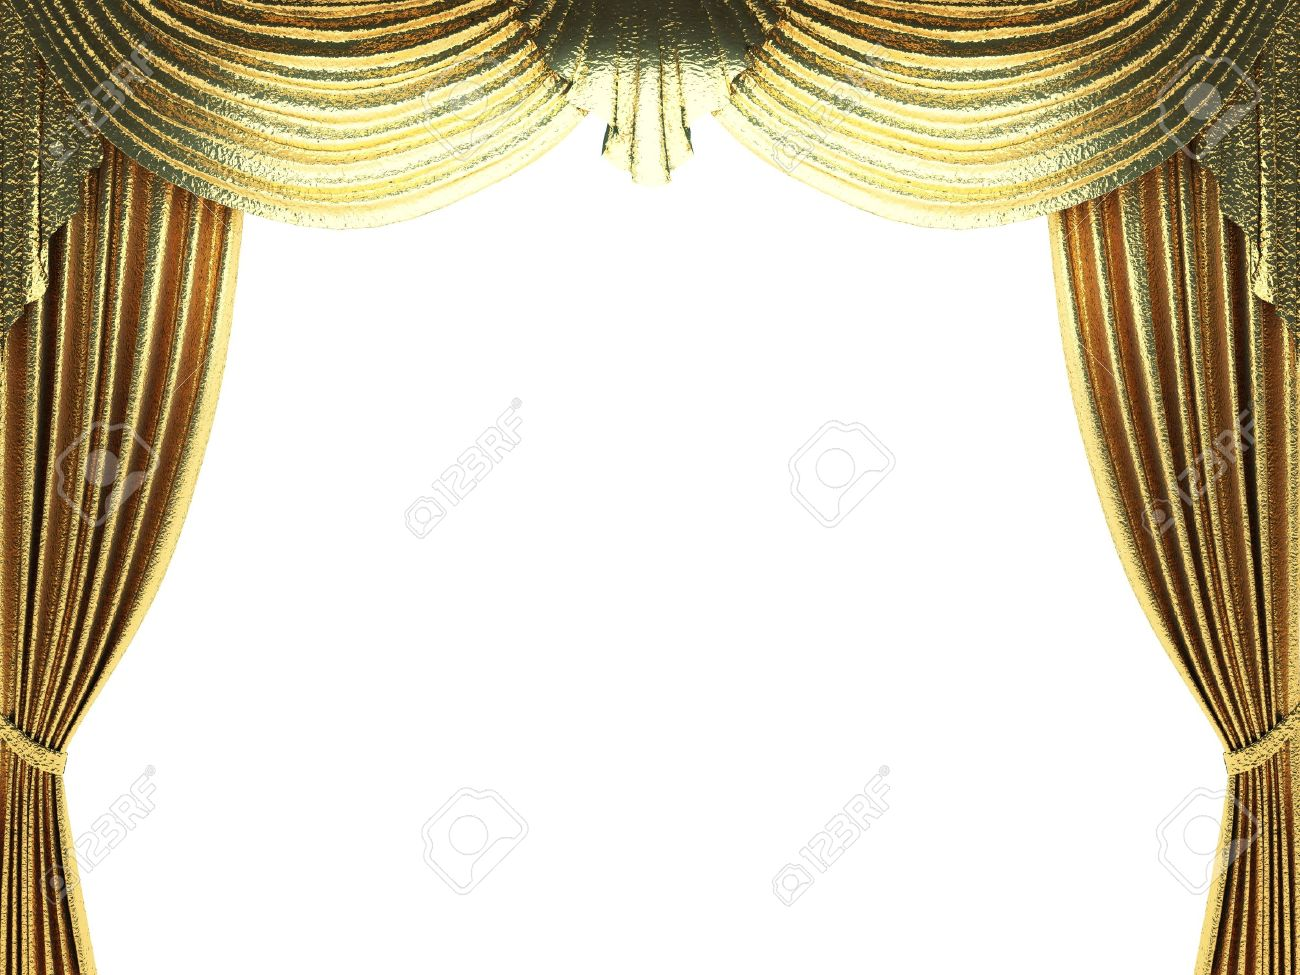 Gold stage curtain - Stock Photo Golden Curtain Opening Scene Made In 3d